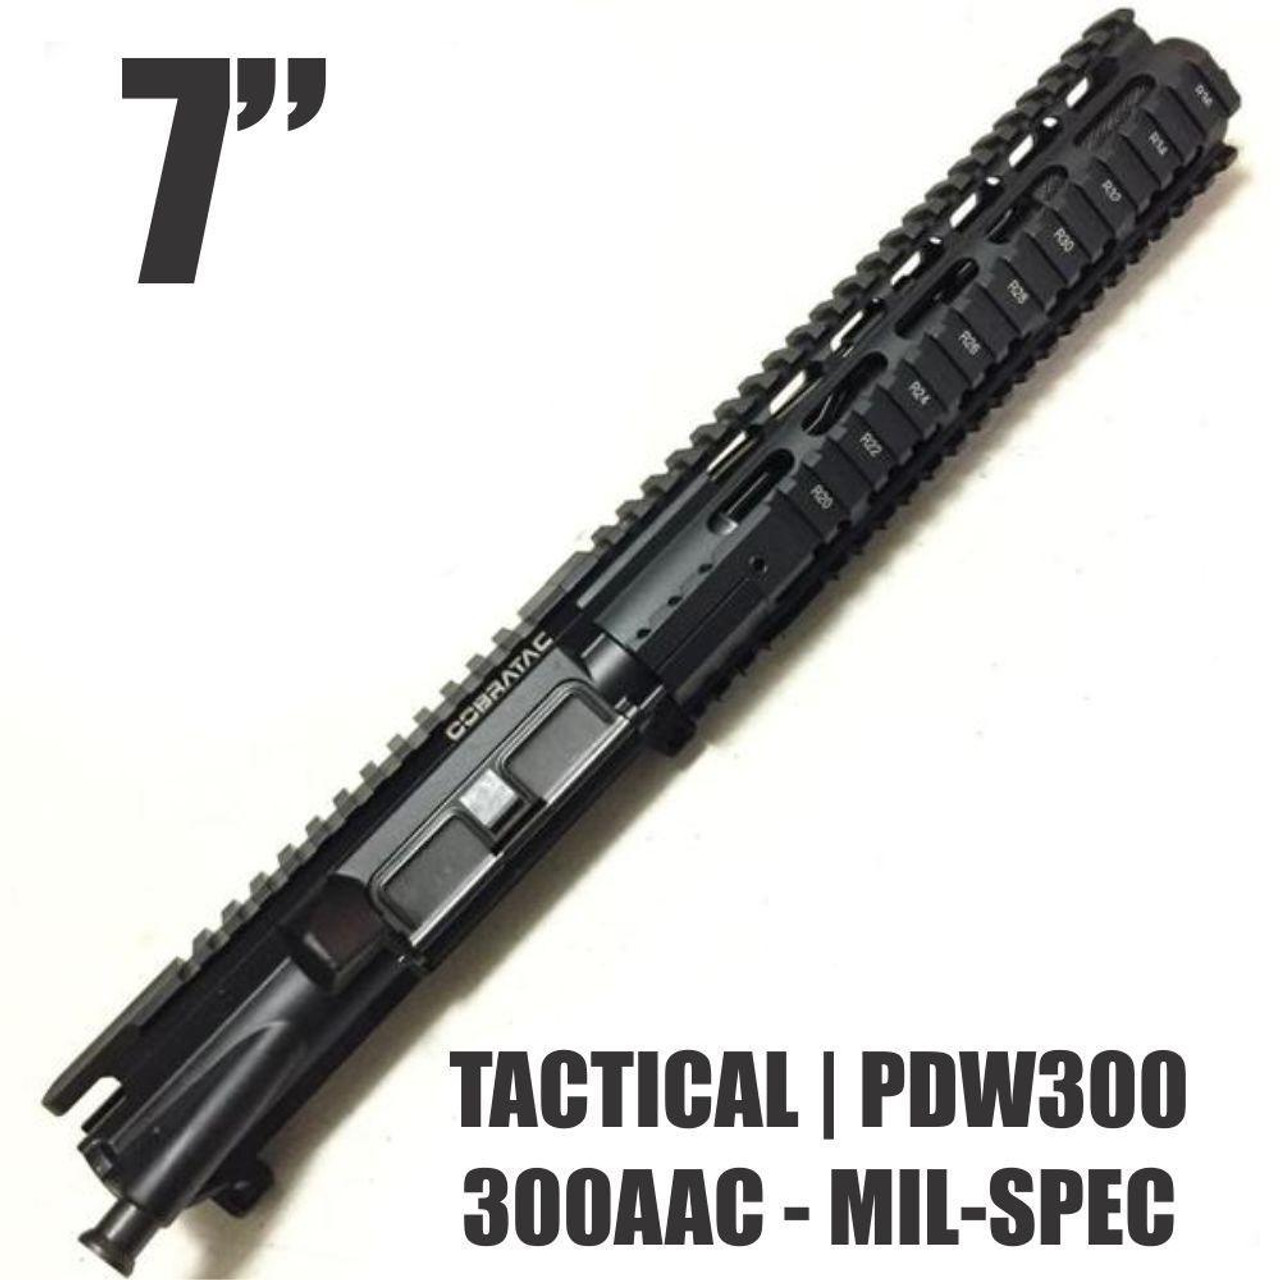 7 TACTICAL PDW300 | 300 AAC BLACKOUT